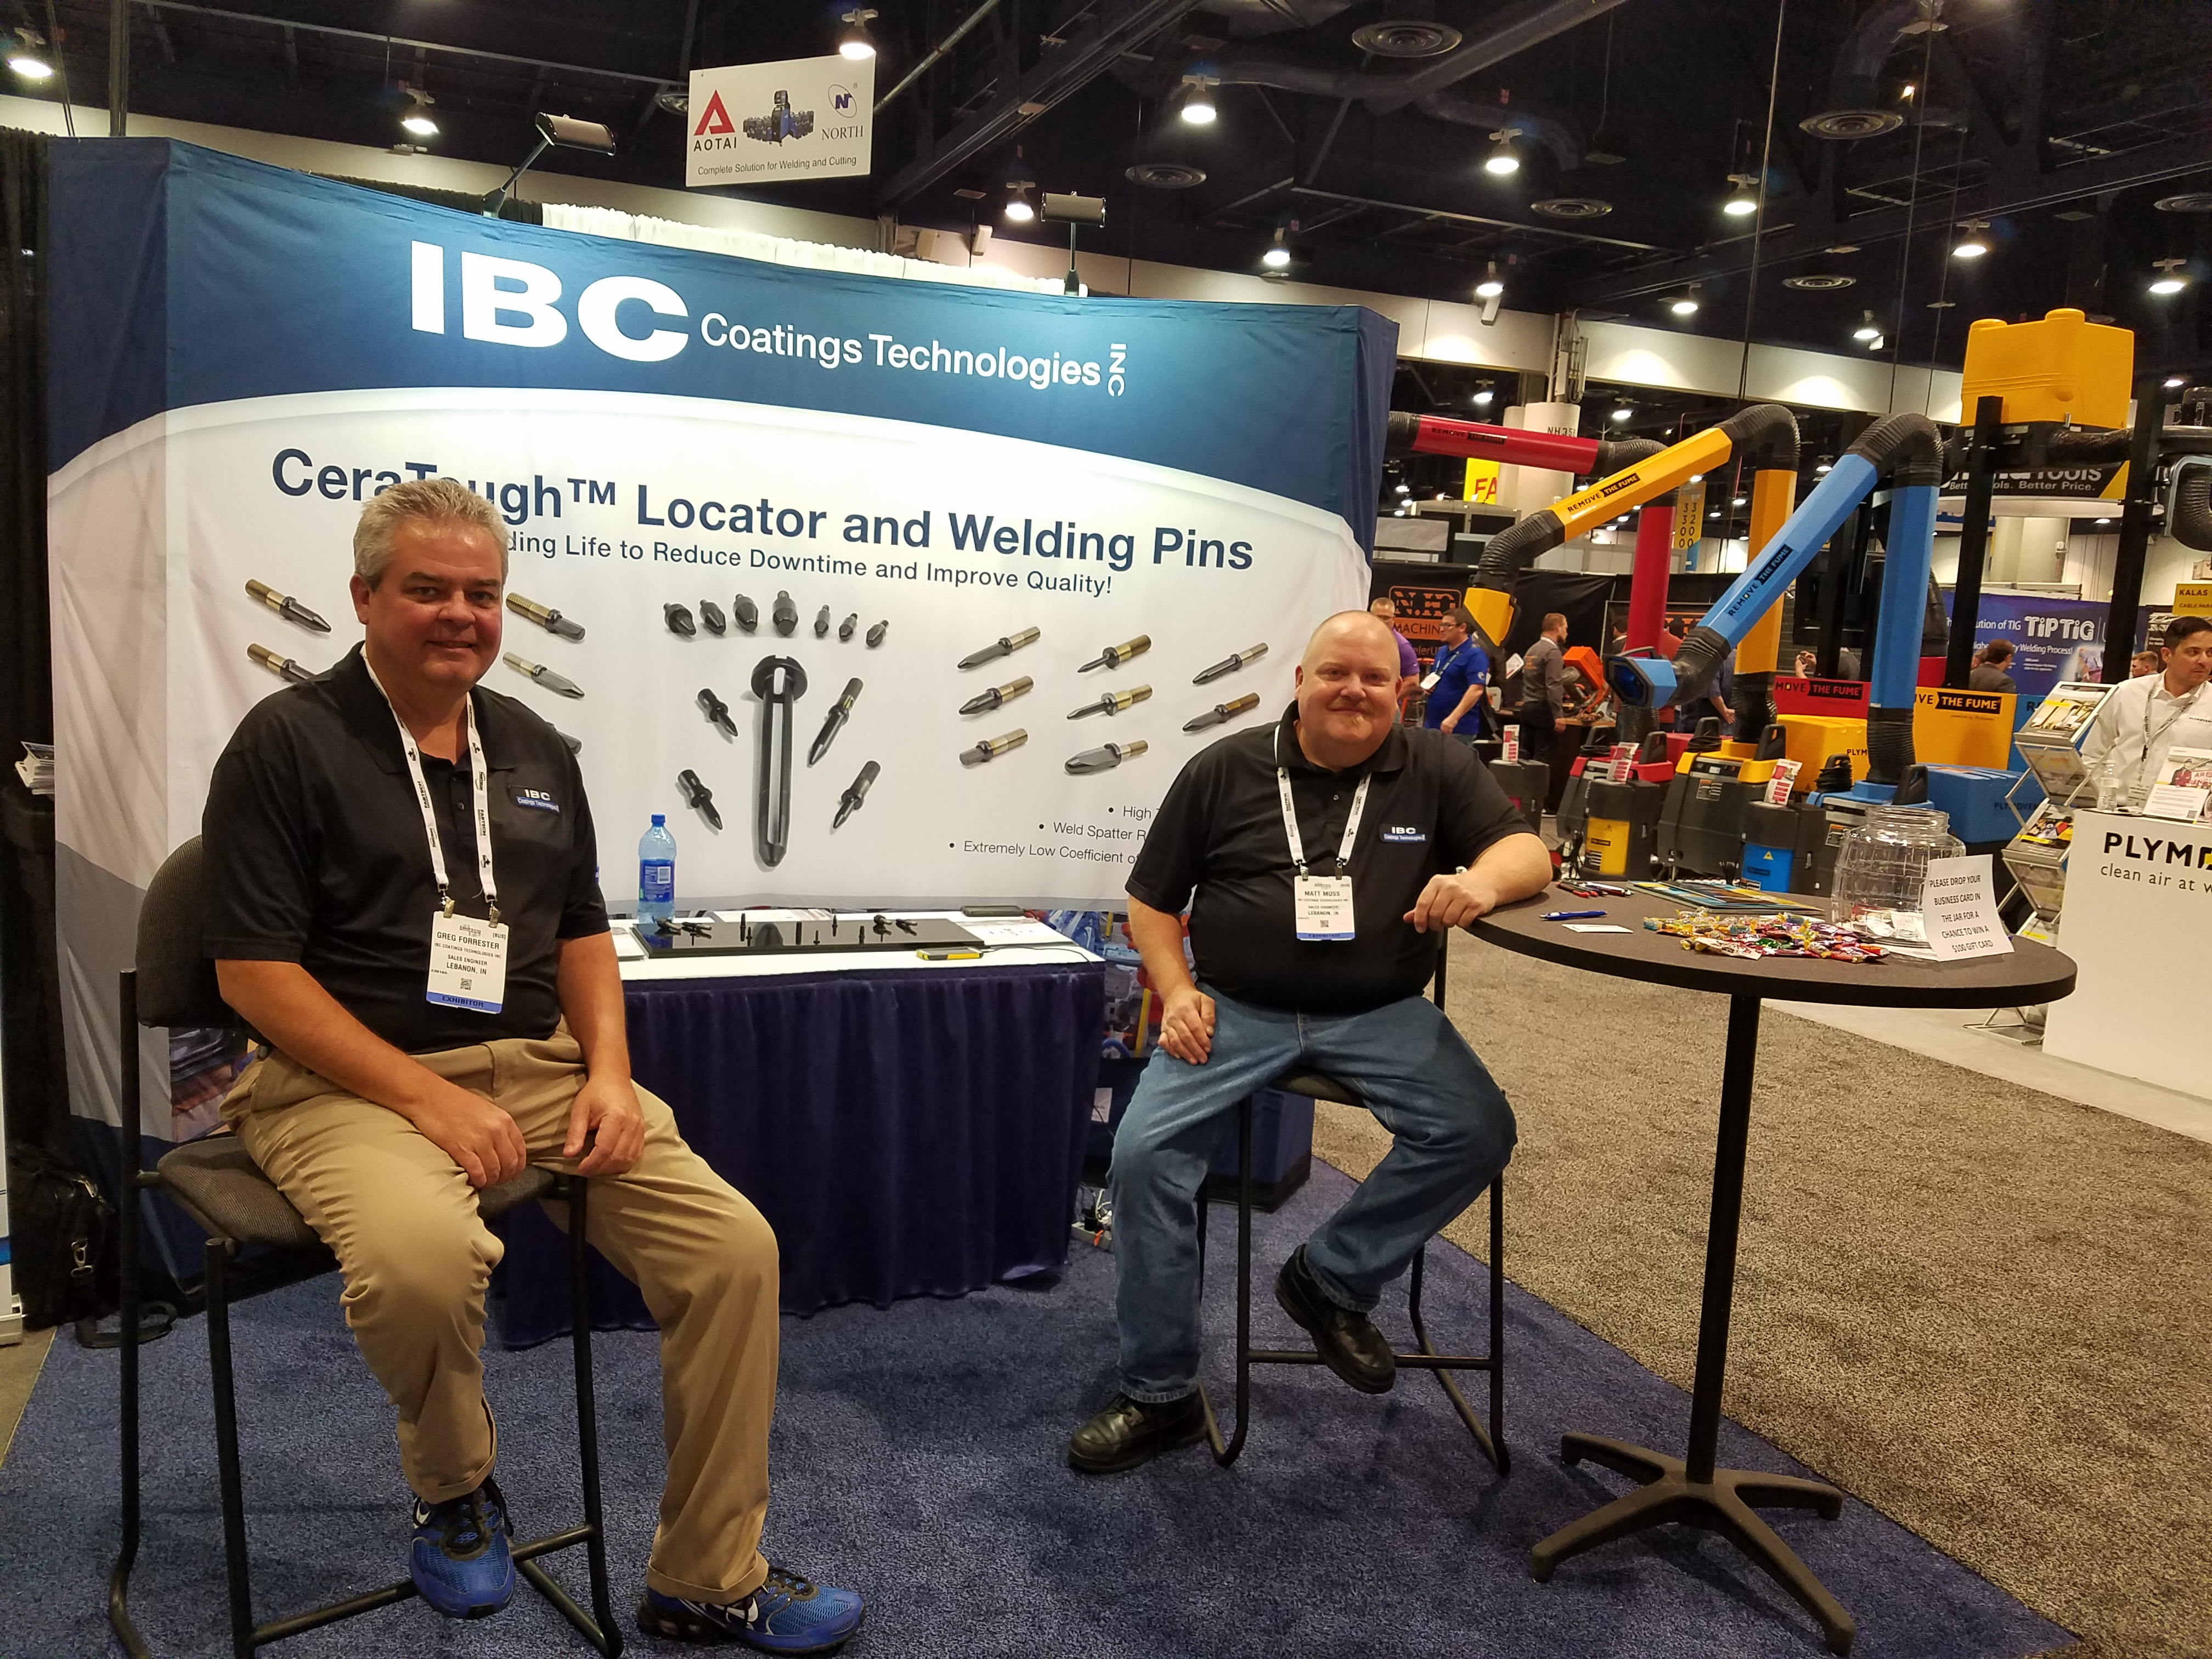 IBC Coatings at FABTECH. Locator and welding pins.